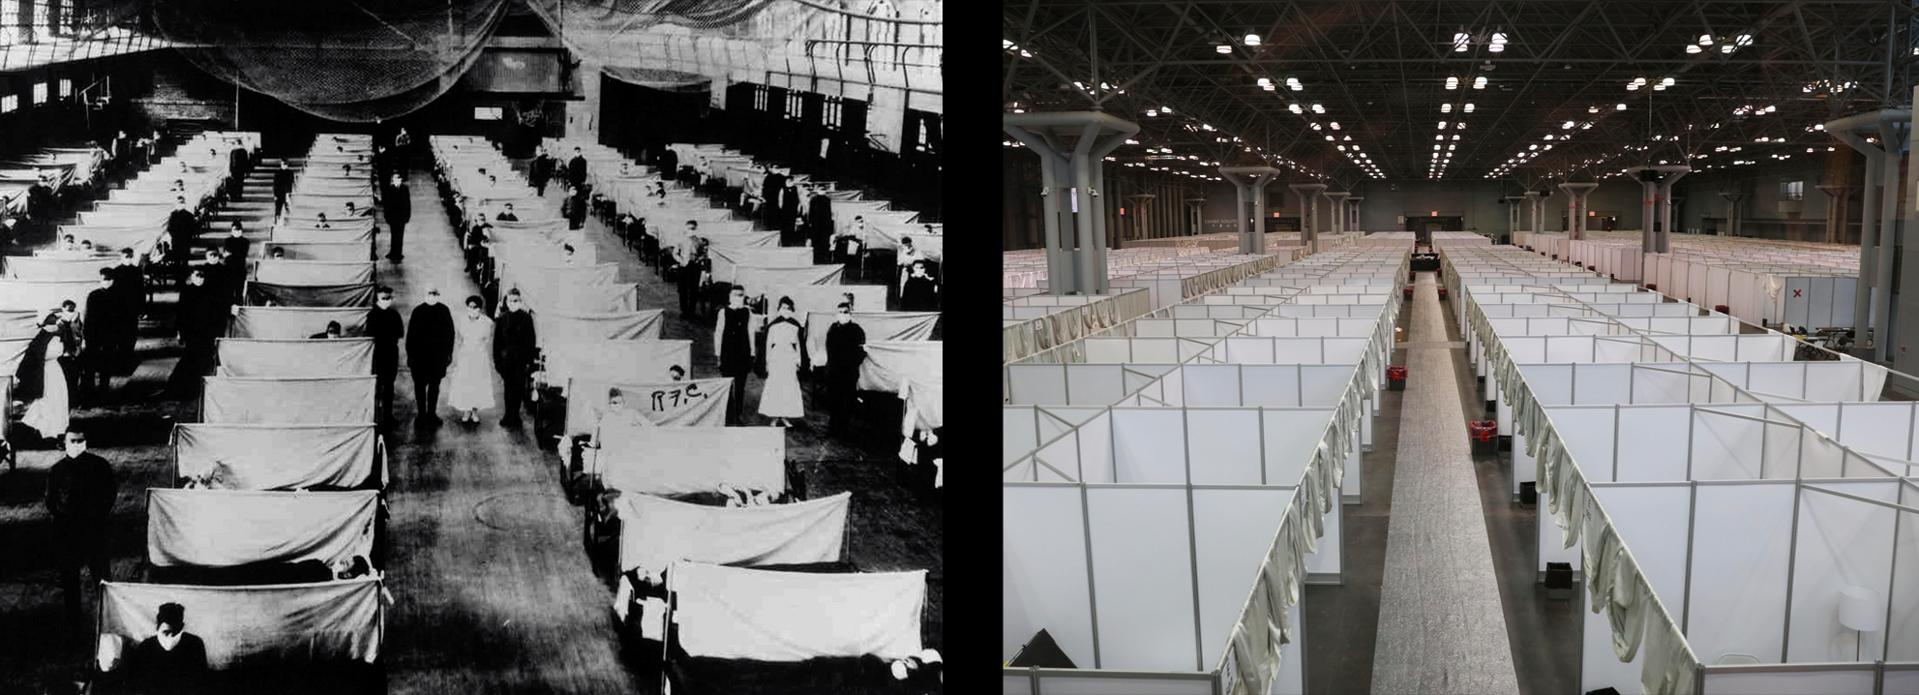 For Emergencies Only: With hospitals overburdened in both pandemics, temporary facilities were constructed for patients in warehouses and convention centers.